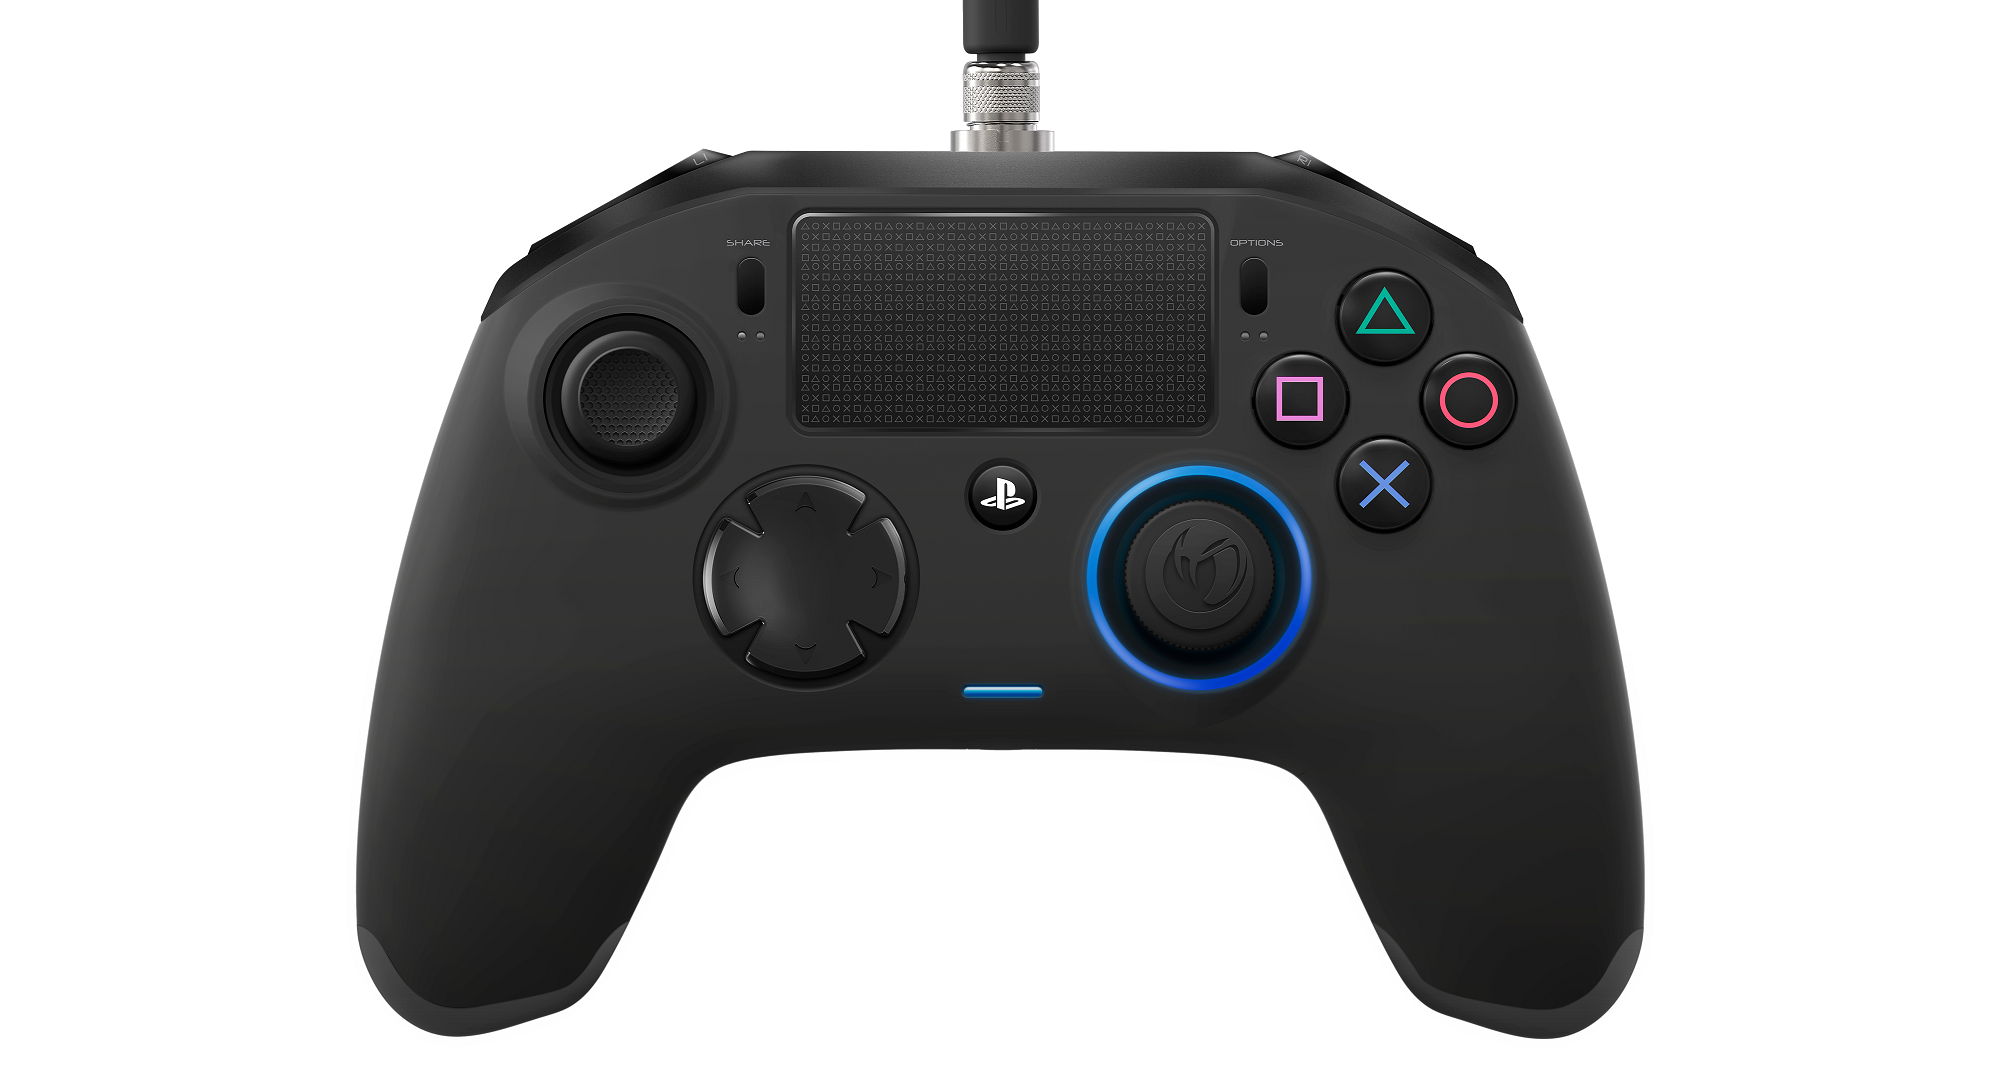 Playstation 4 pro controller